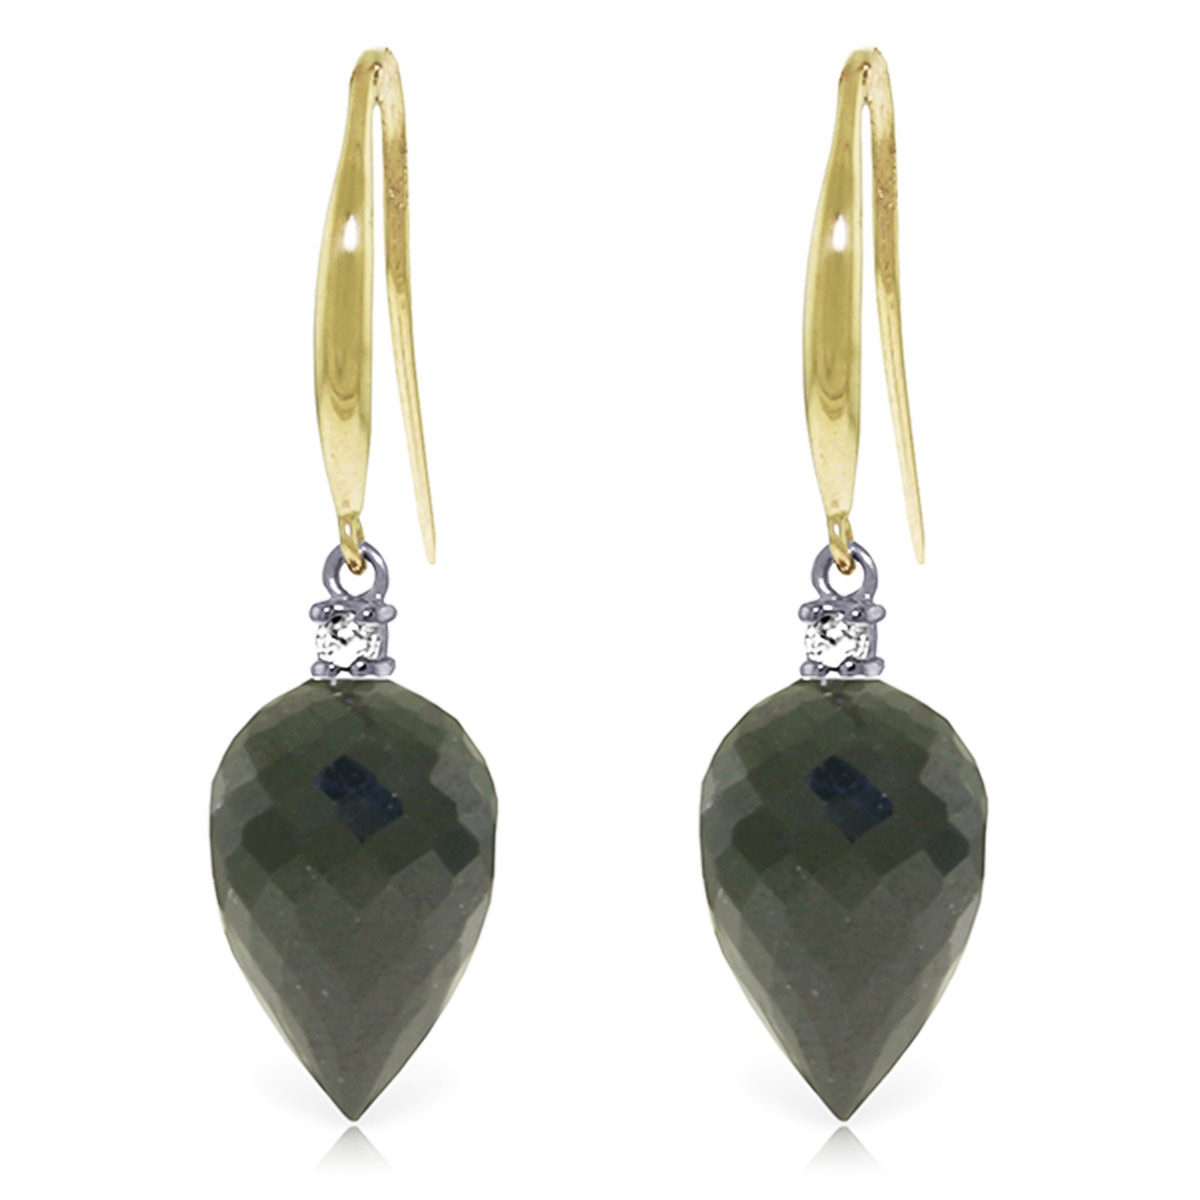 Black Spinel Drop Earrings 24.6 ctw in 9ct Gold